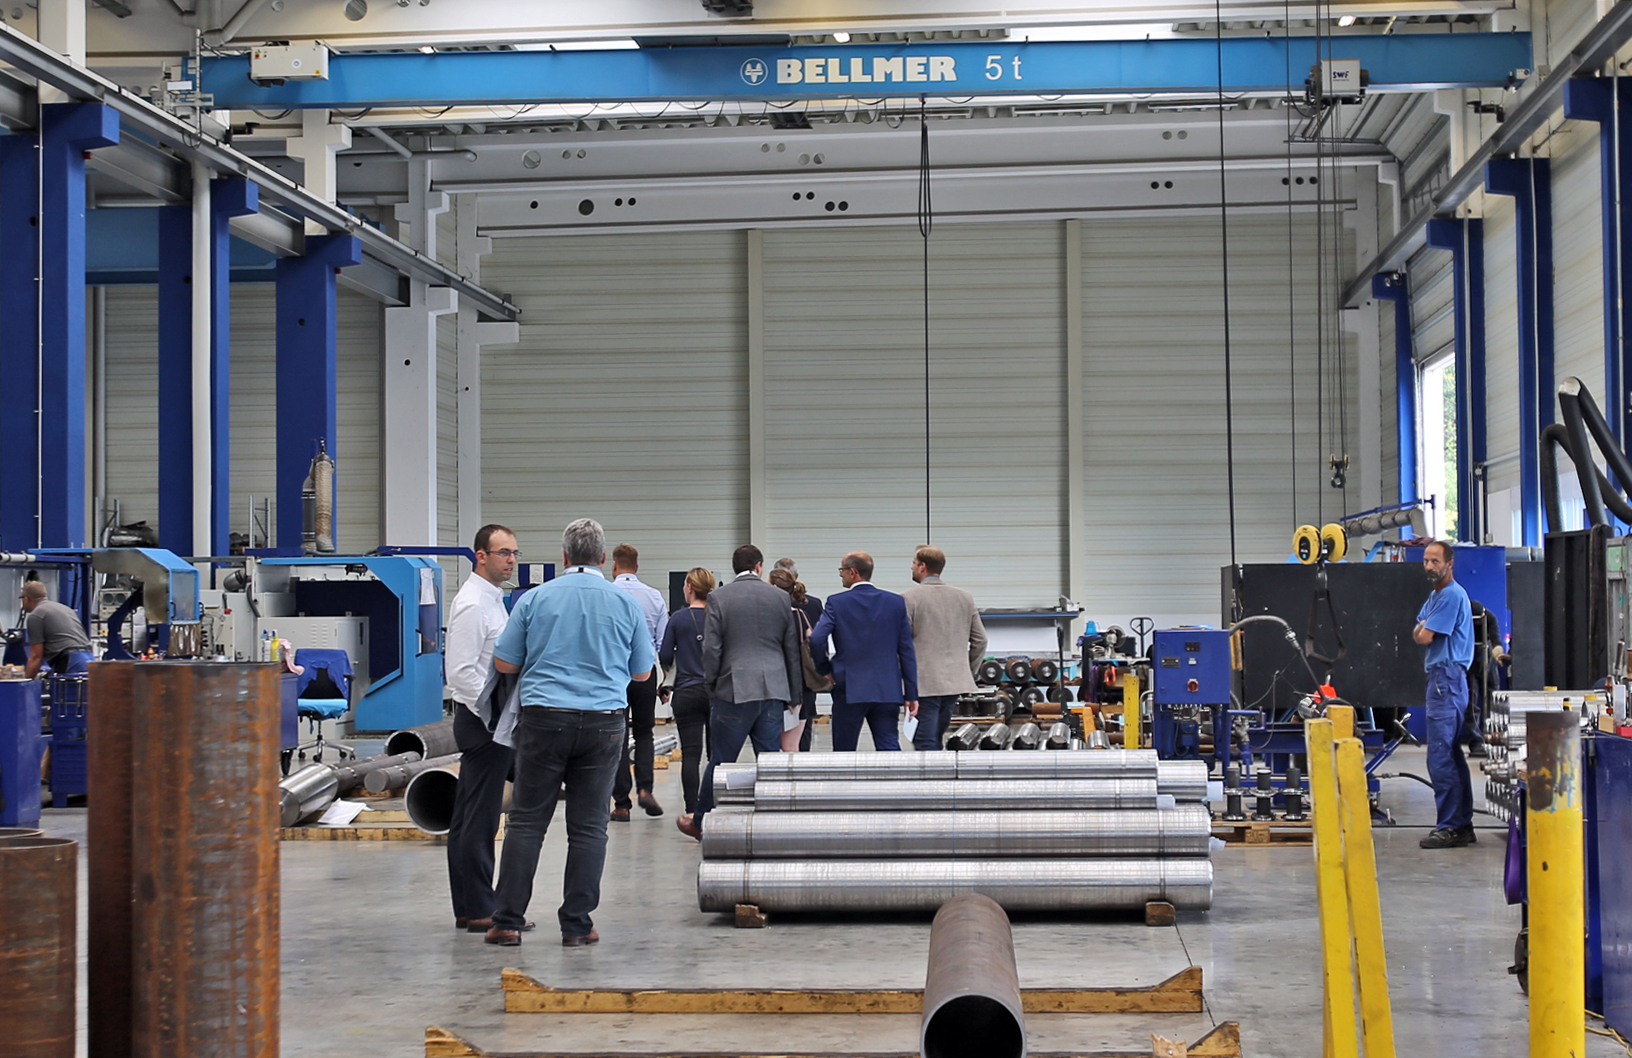 Factory tour of Bellmer in Niefern